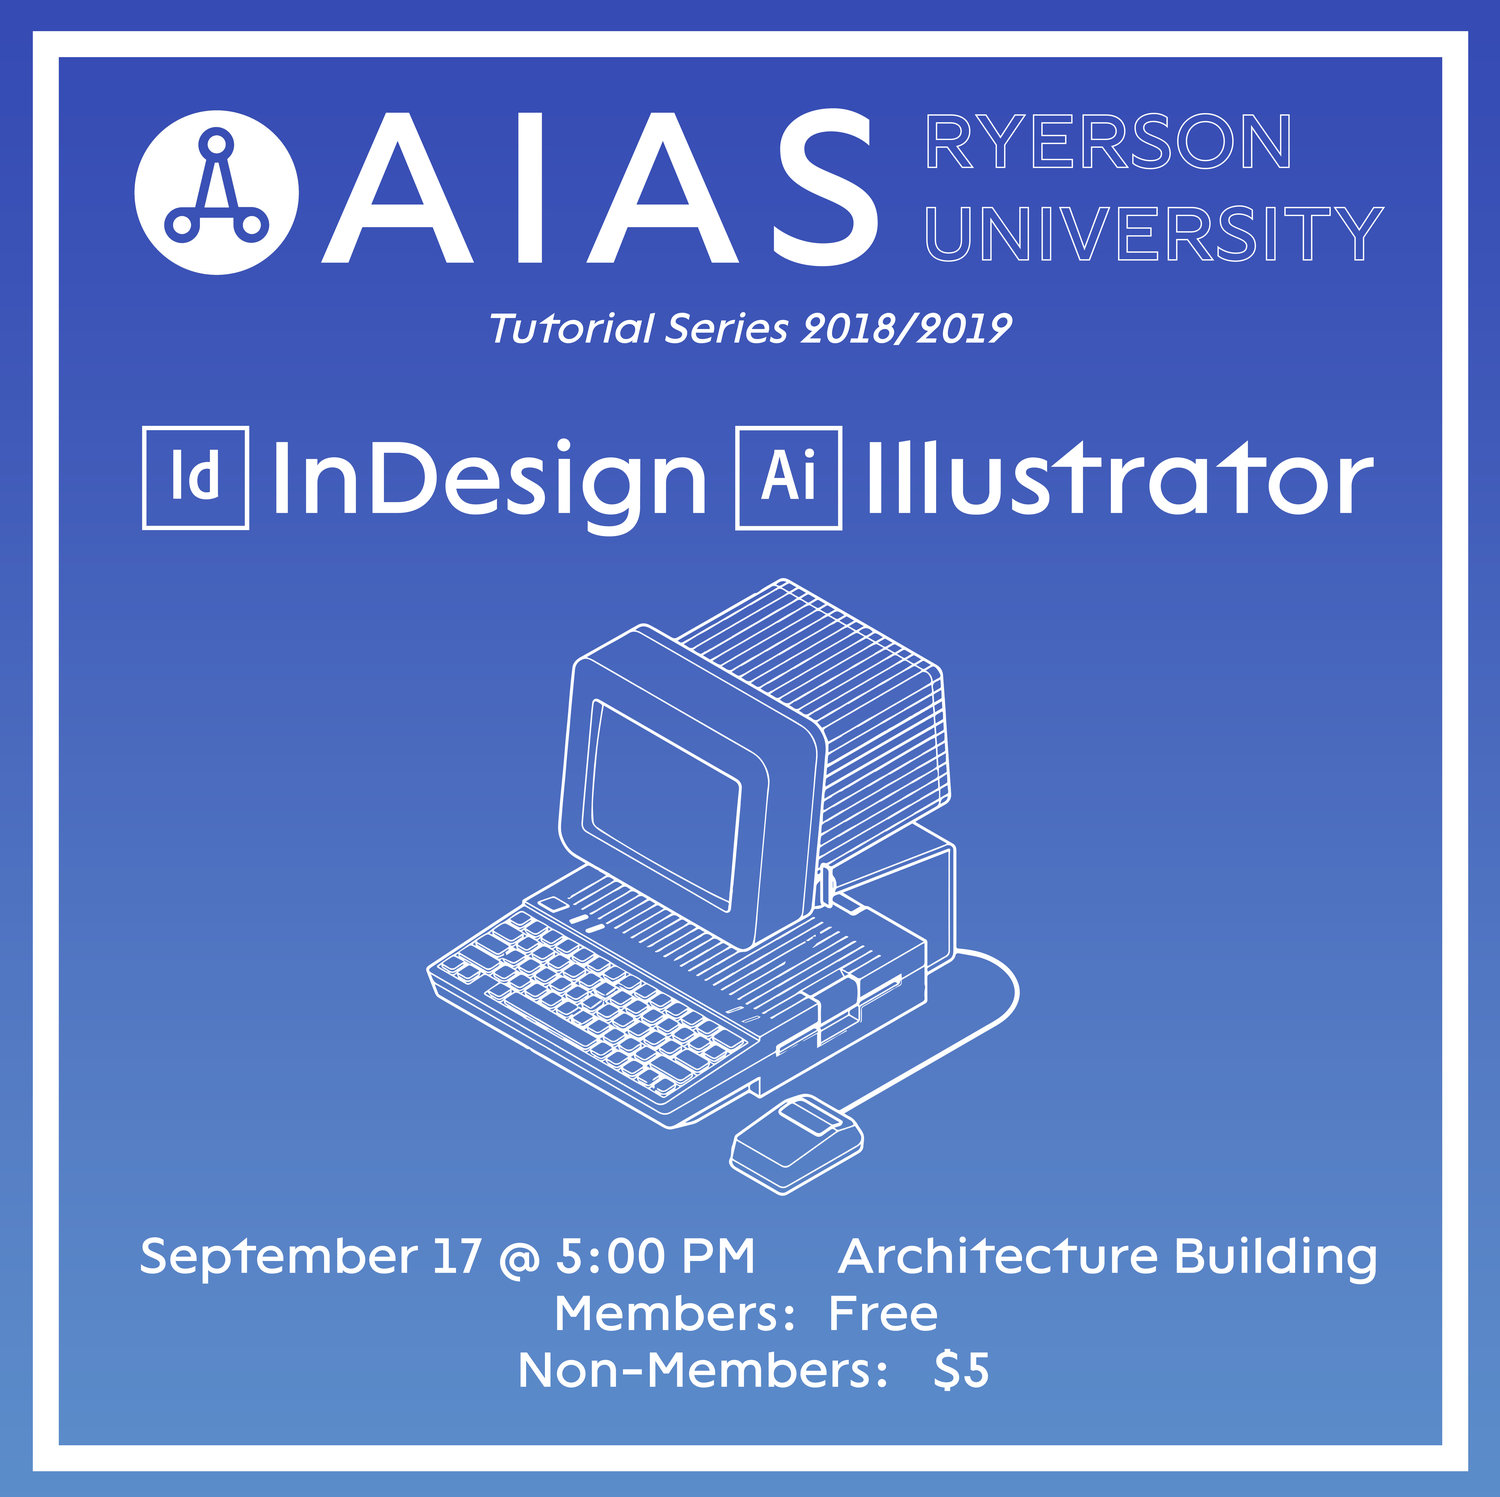 InDesign and Illustrator Tutorial — AIAS | Ryerson